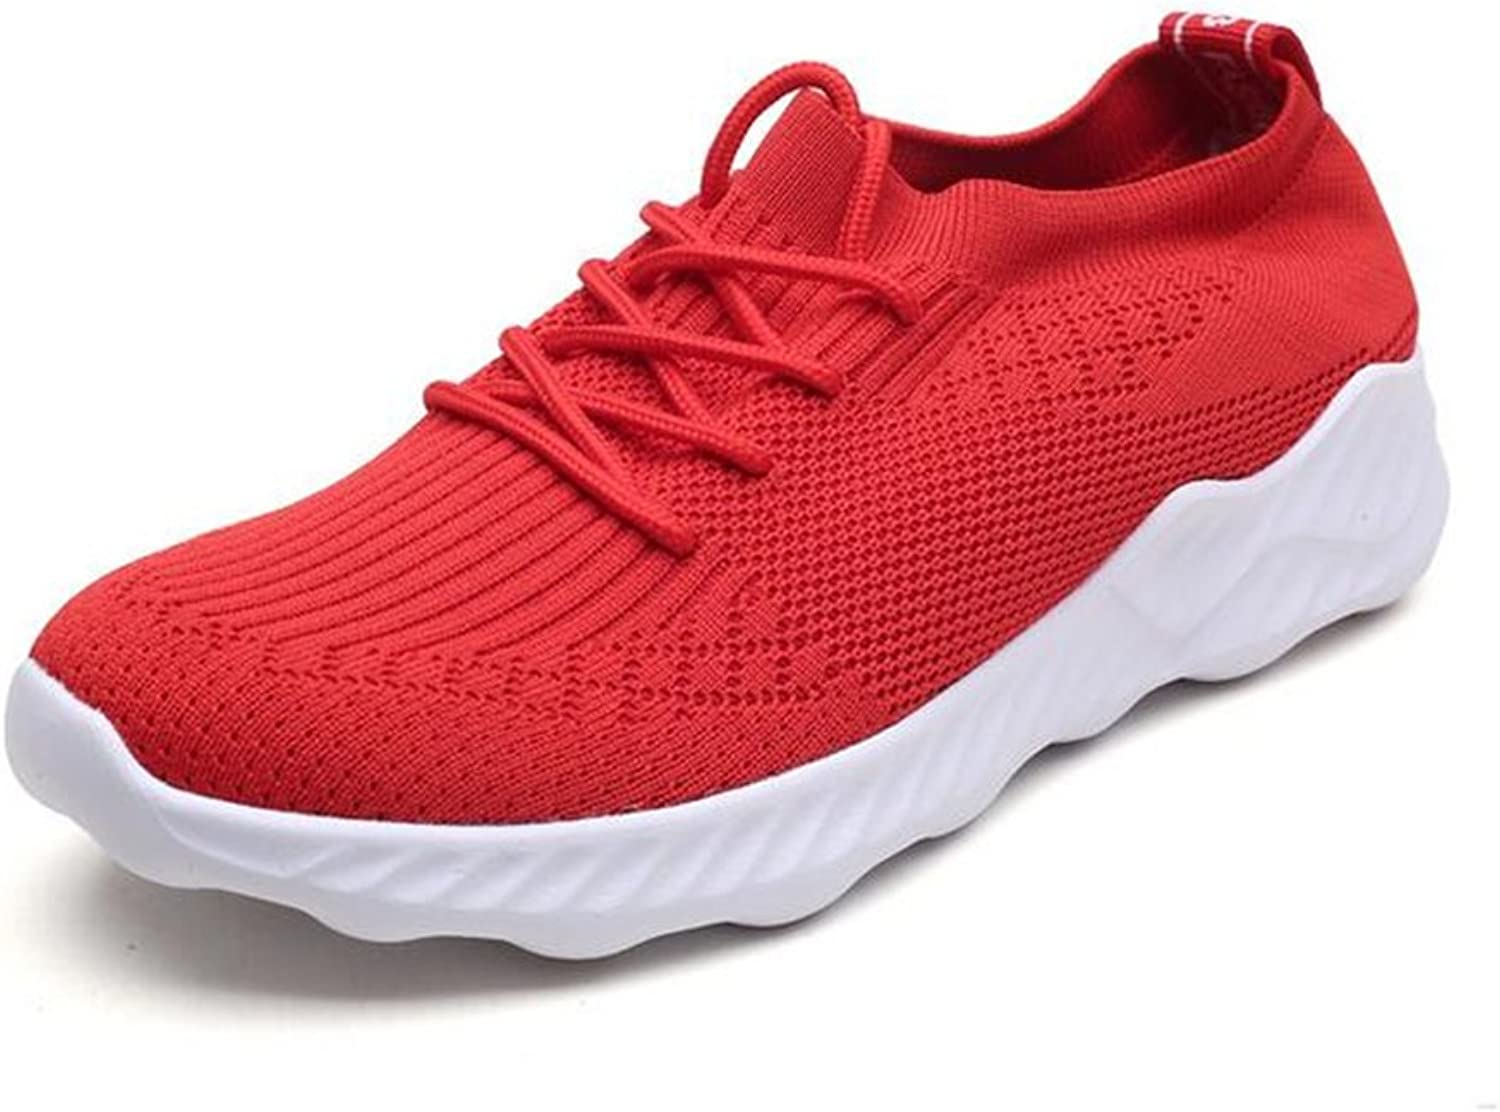 Exing Womens's shoes Summer 2018 New Tide shoes,Academy Athletic Casual shoes,Fitness shoes Running shoes